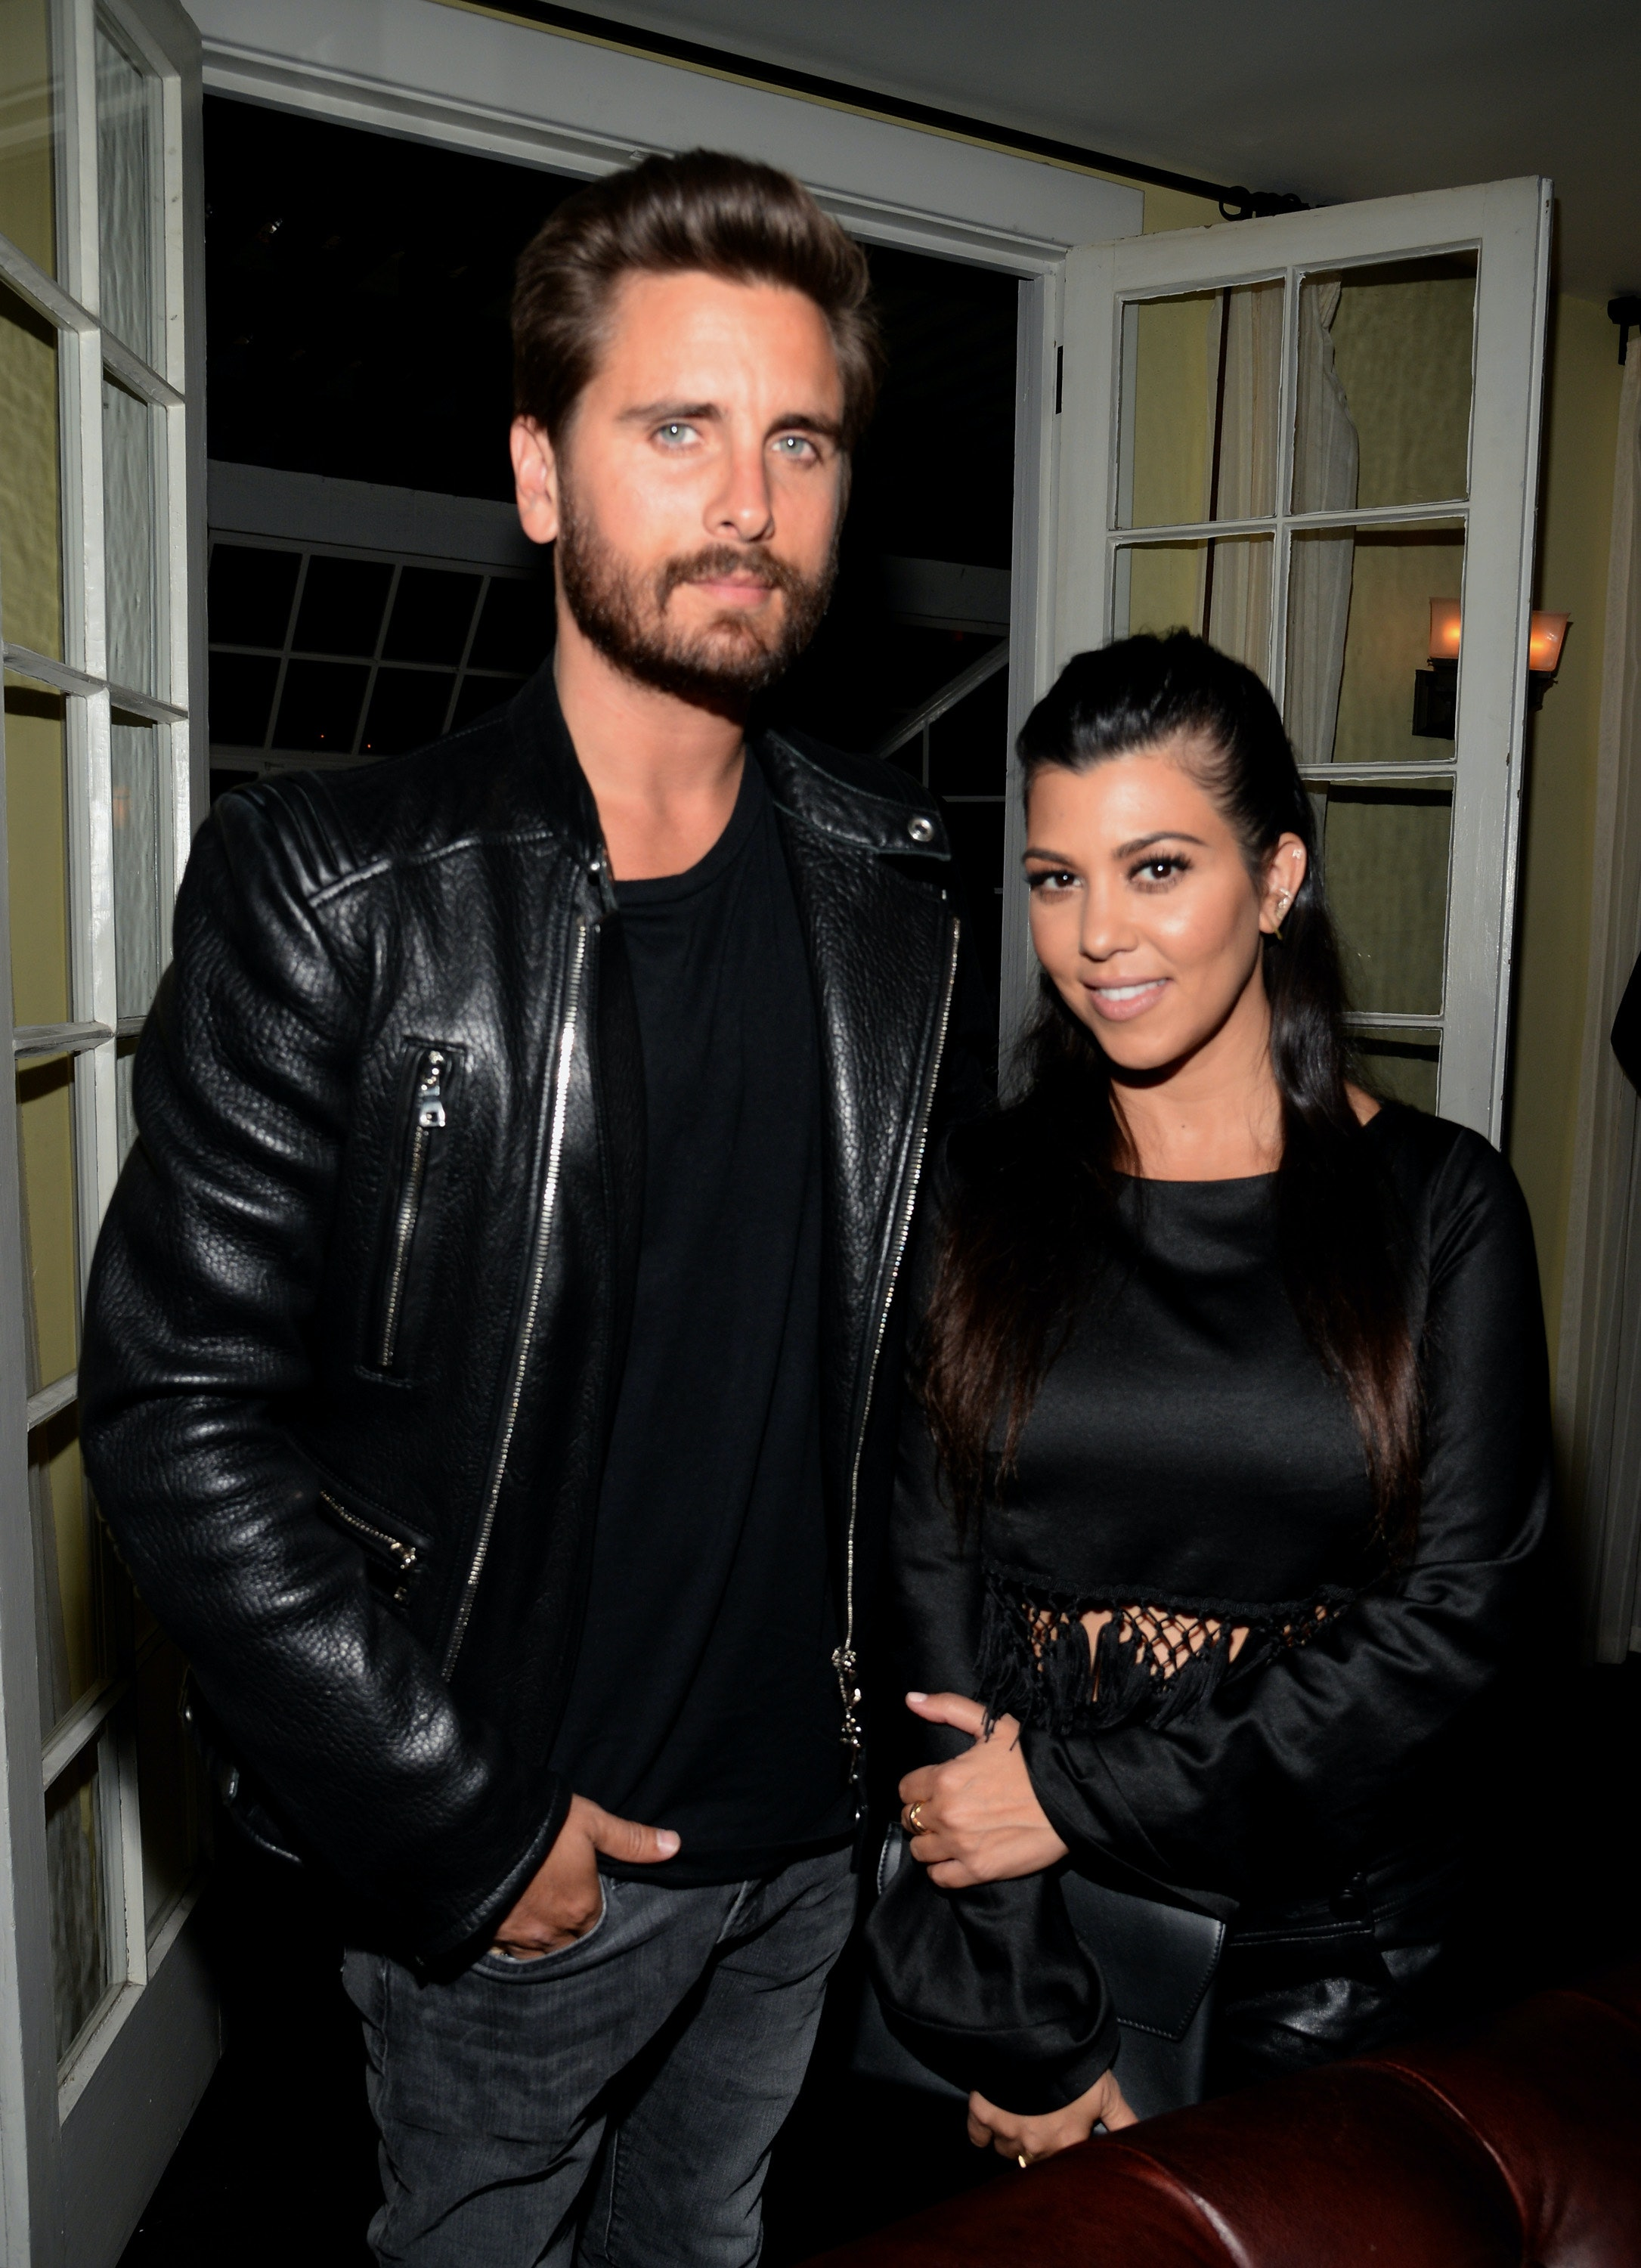 Who is kourtney dating right now